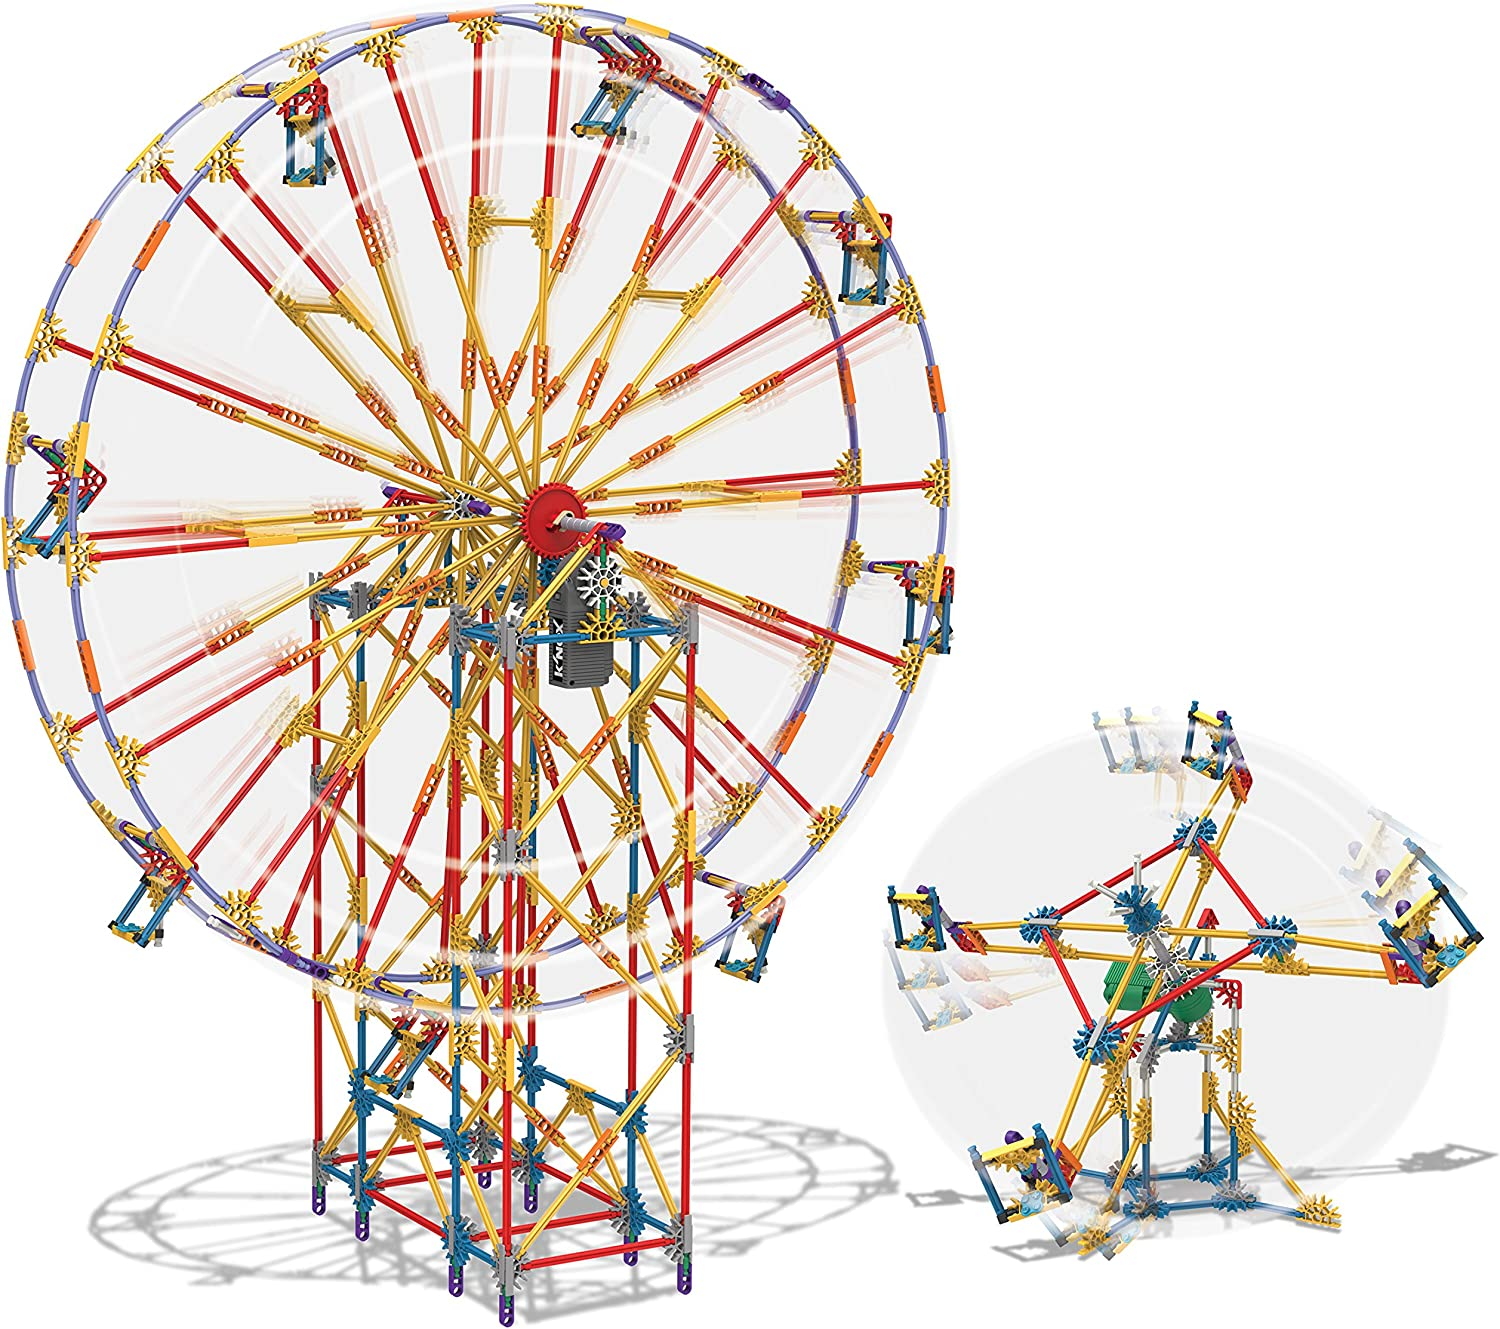 KNEX 2-in-1 Ferris Wheel Building Set Amazon Exclusive by KNex ...